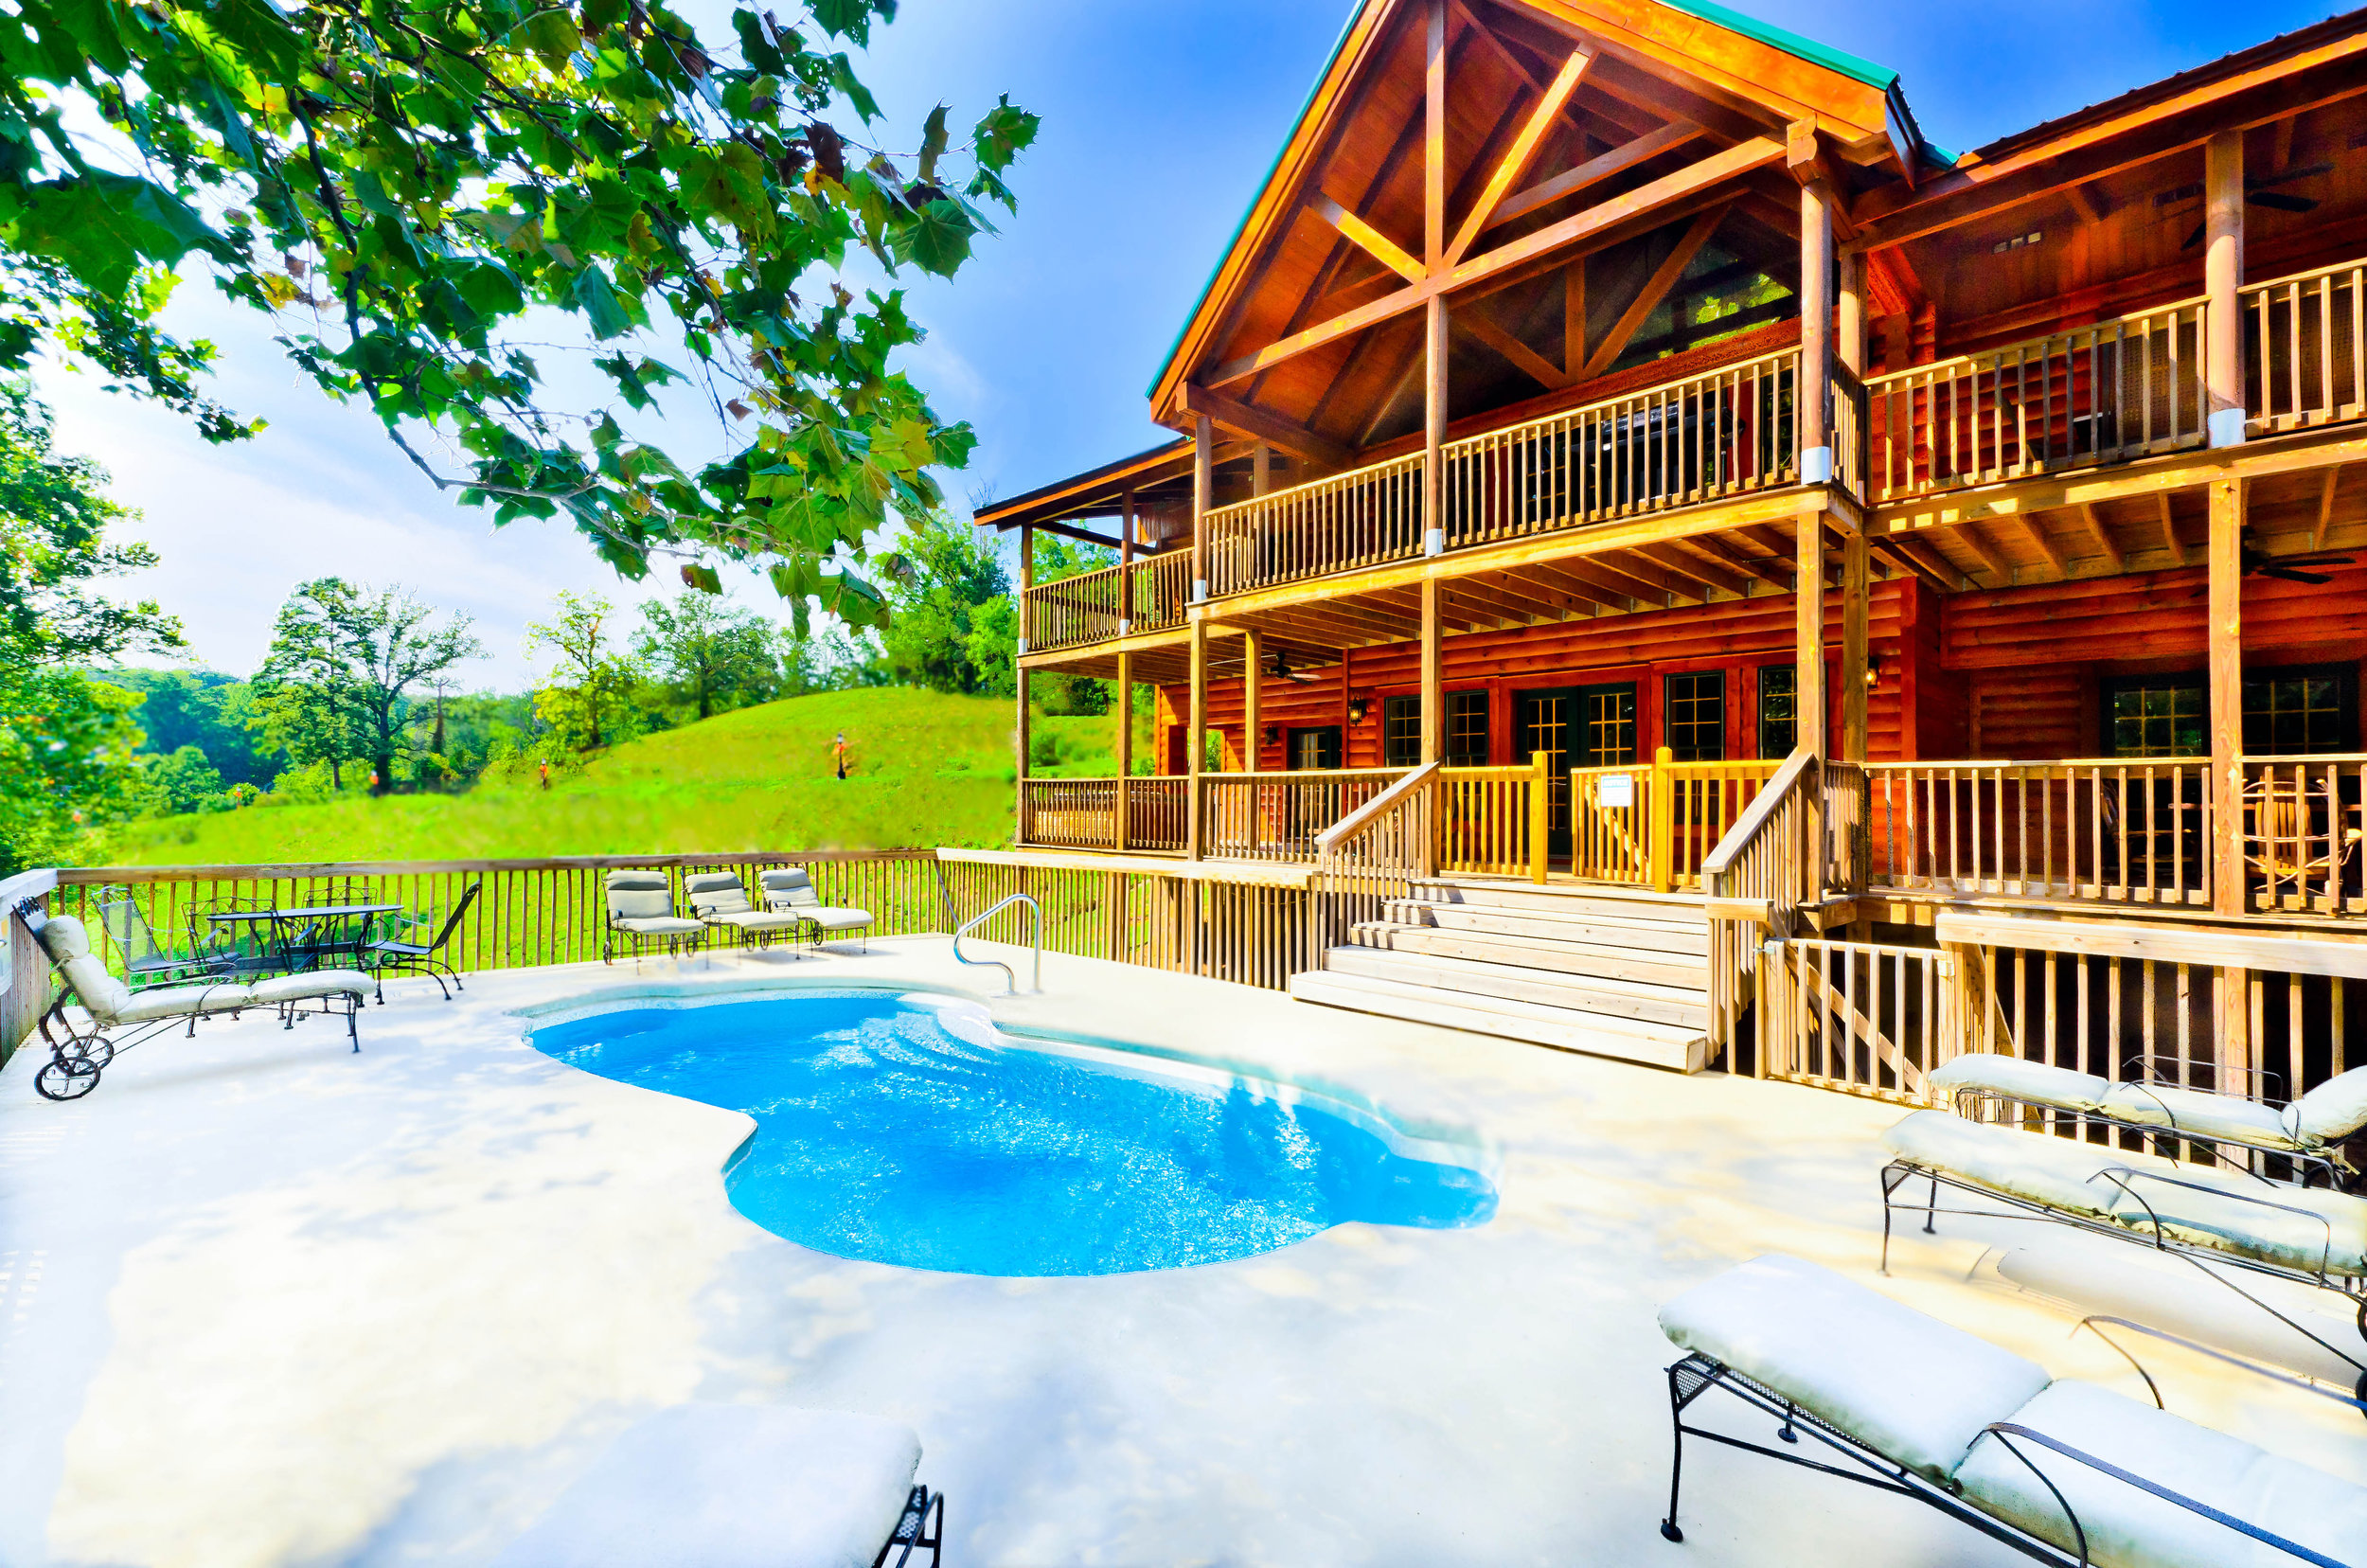 Cabin with pool.jpg